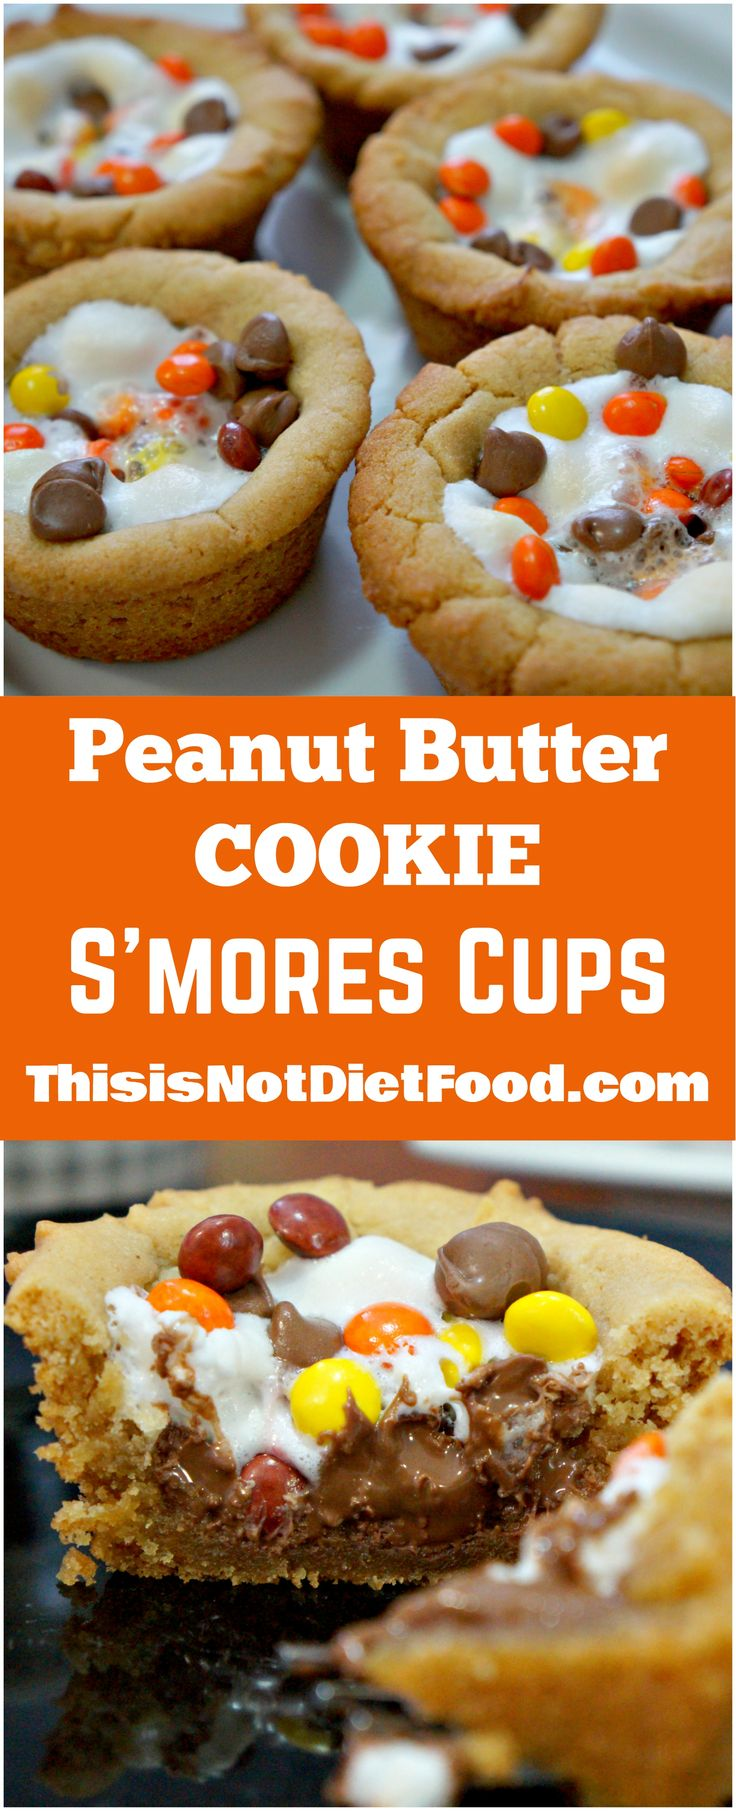 Peanut Butter Cookie Cups. S'mores cookies. Easy peanut butter cookie recipe. Yummy peanut butter cookie cups filled with chocolate chips, marshmallows and mini Reese's Pieces.